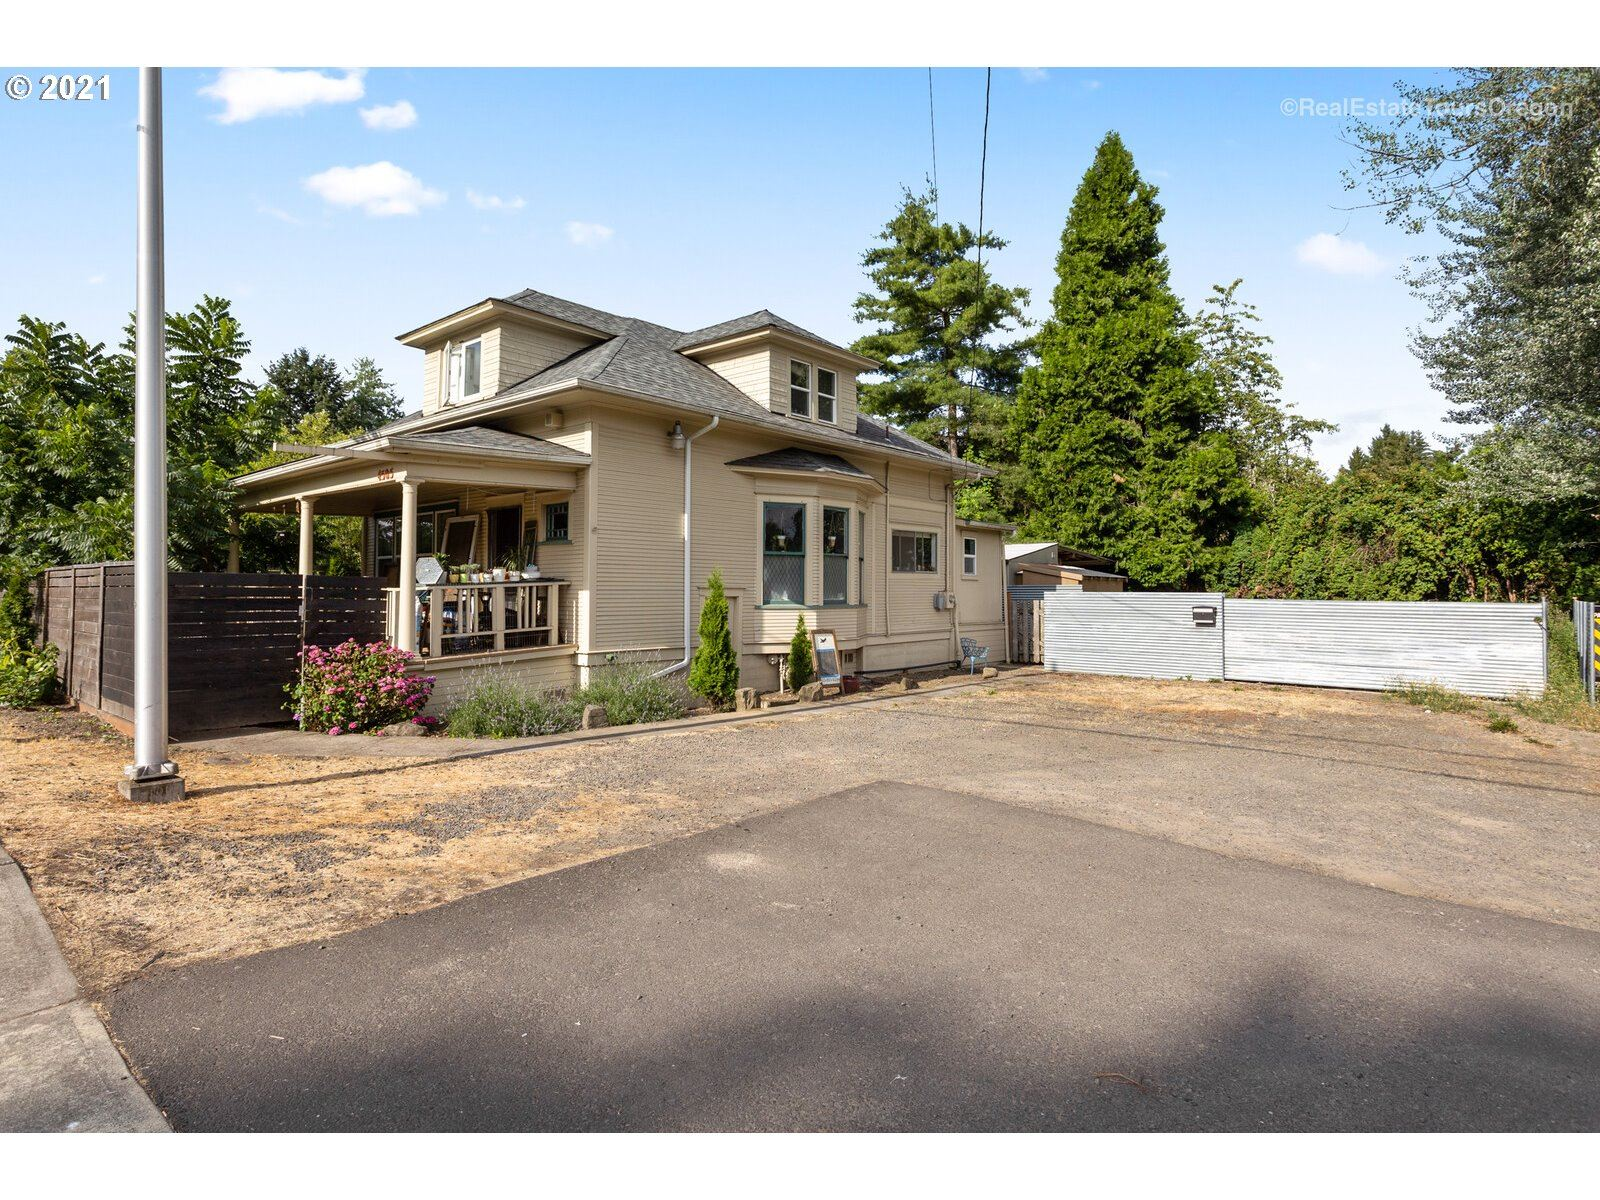 Photo of 4505 SW 185TH AVE, Aloha, OR 97078 (MLS # 21020144)